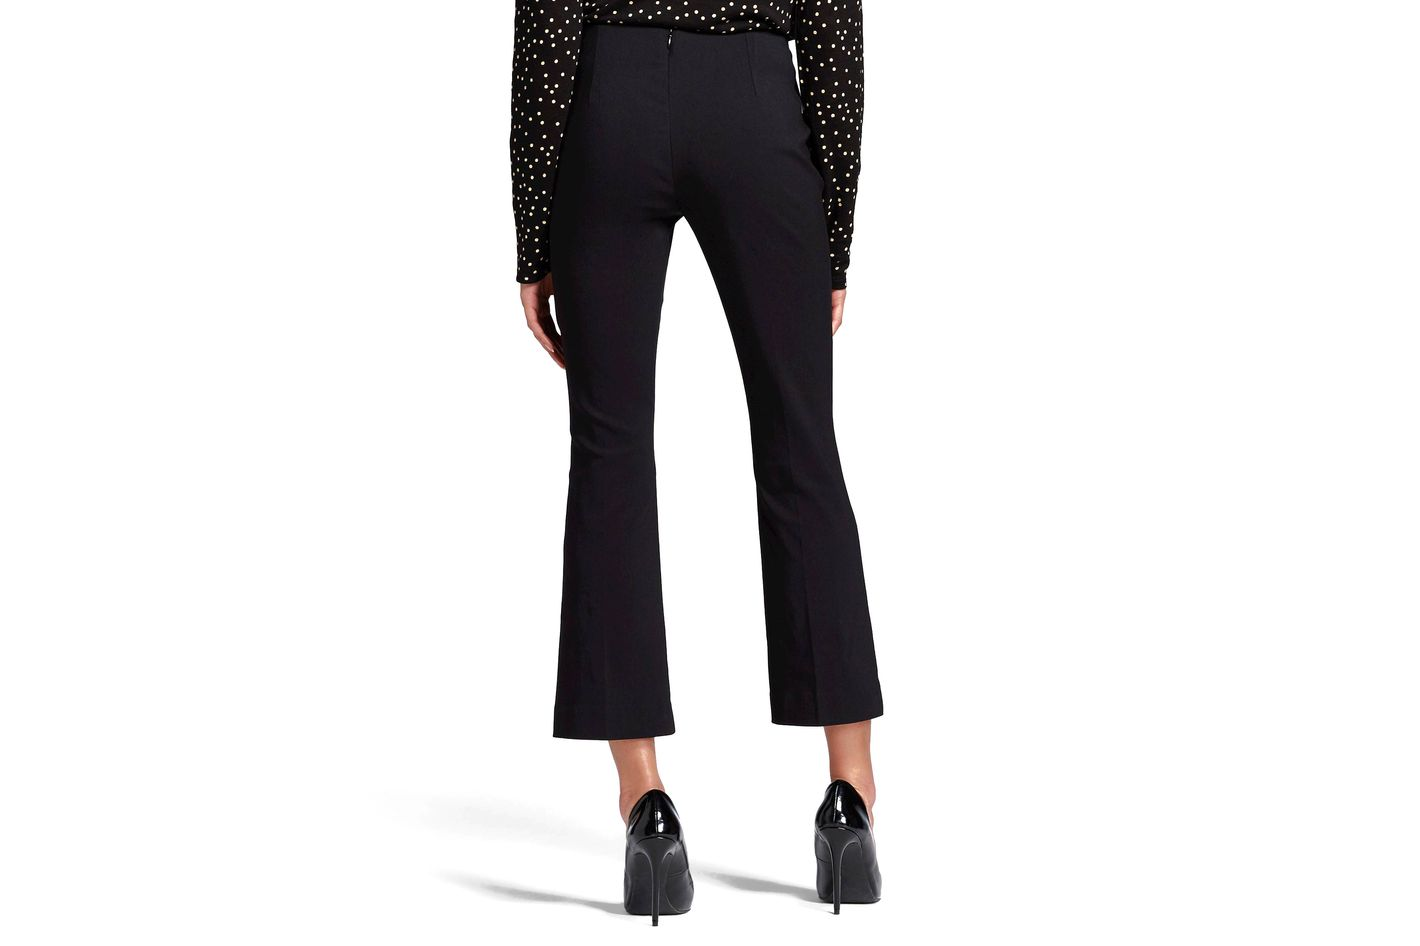 5e0f55d7aa24a Who What Wear Women's Cropped Flair Pants